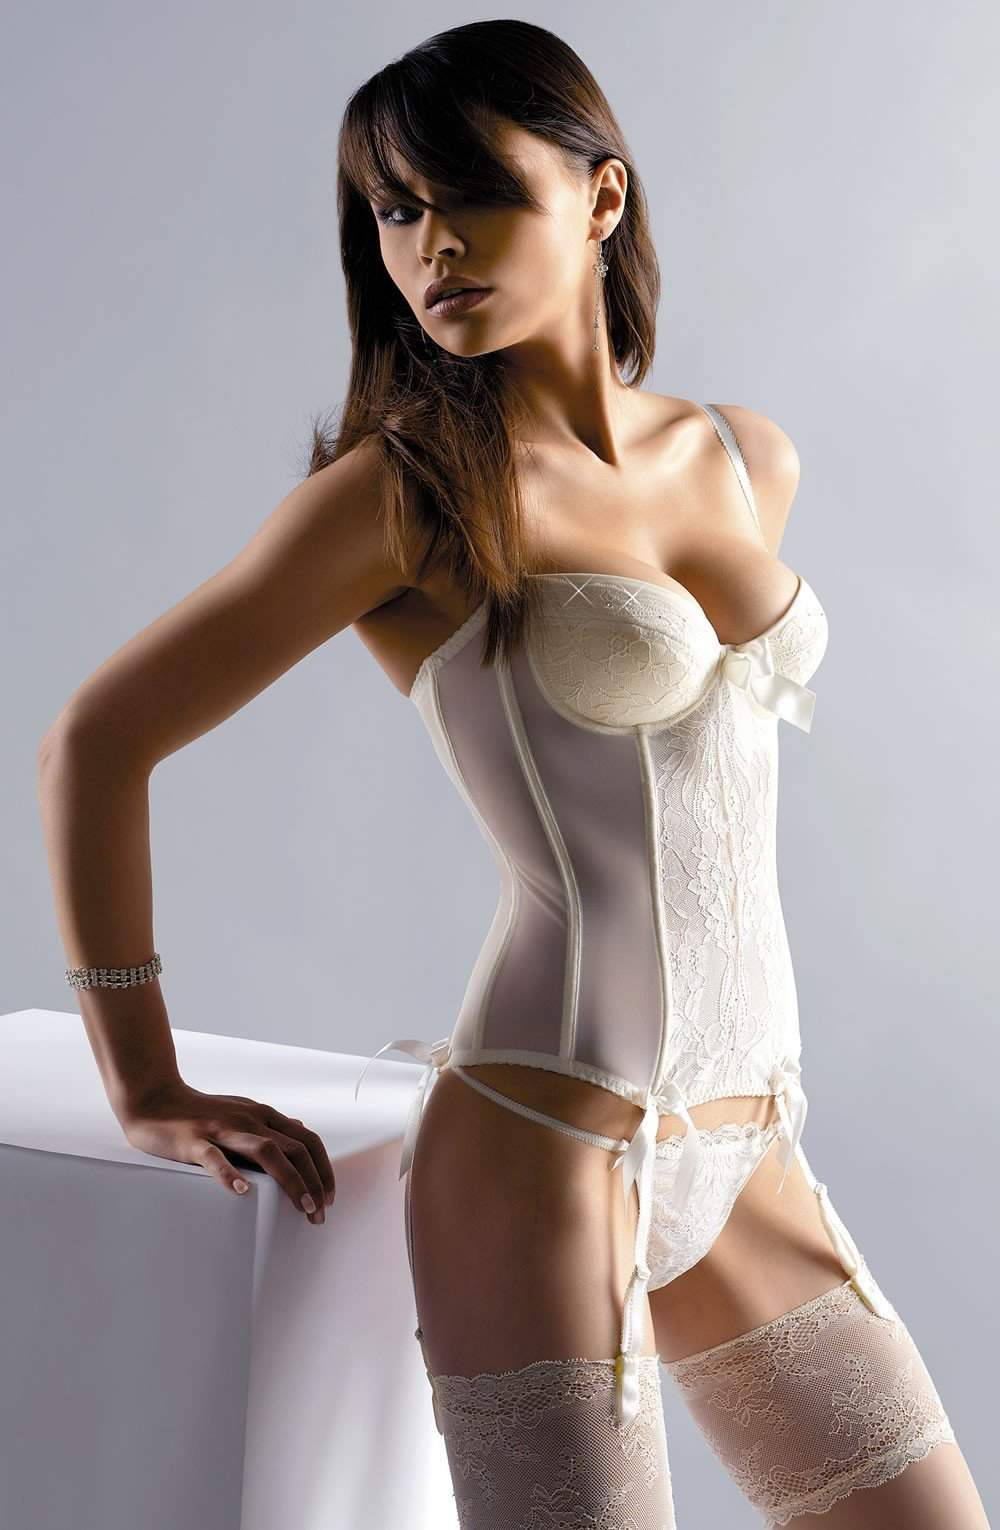 Crystal Basque by Gracya - Gracya - Katys Boutique Lingerie USA